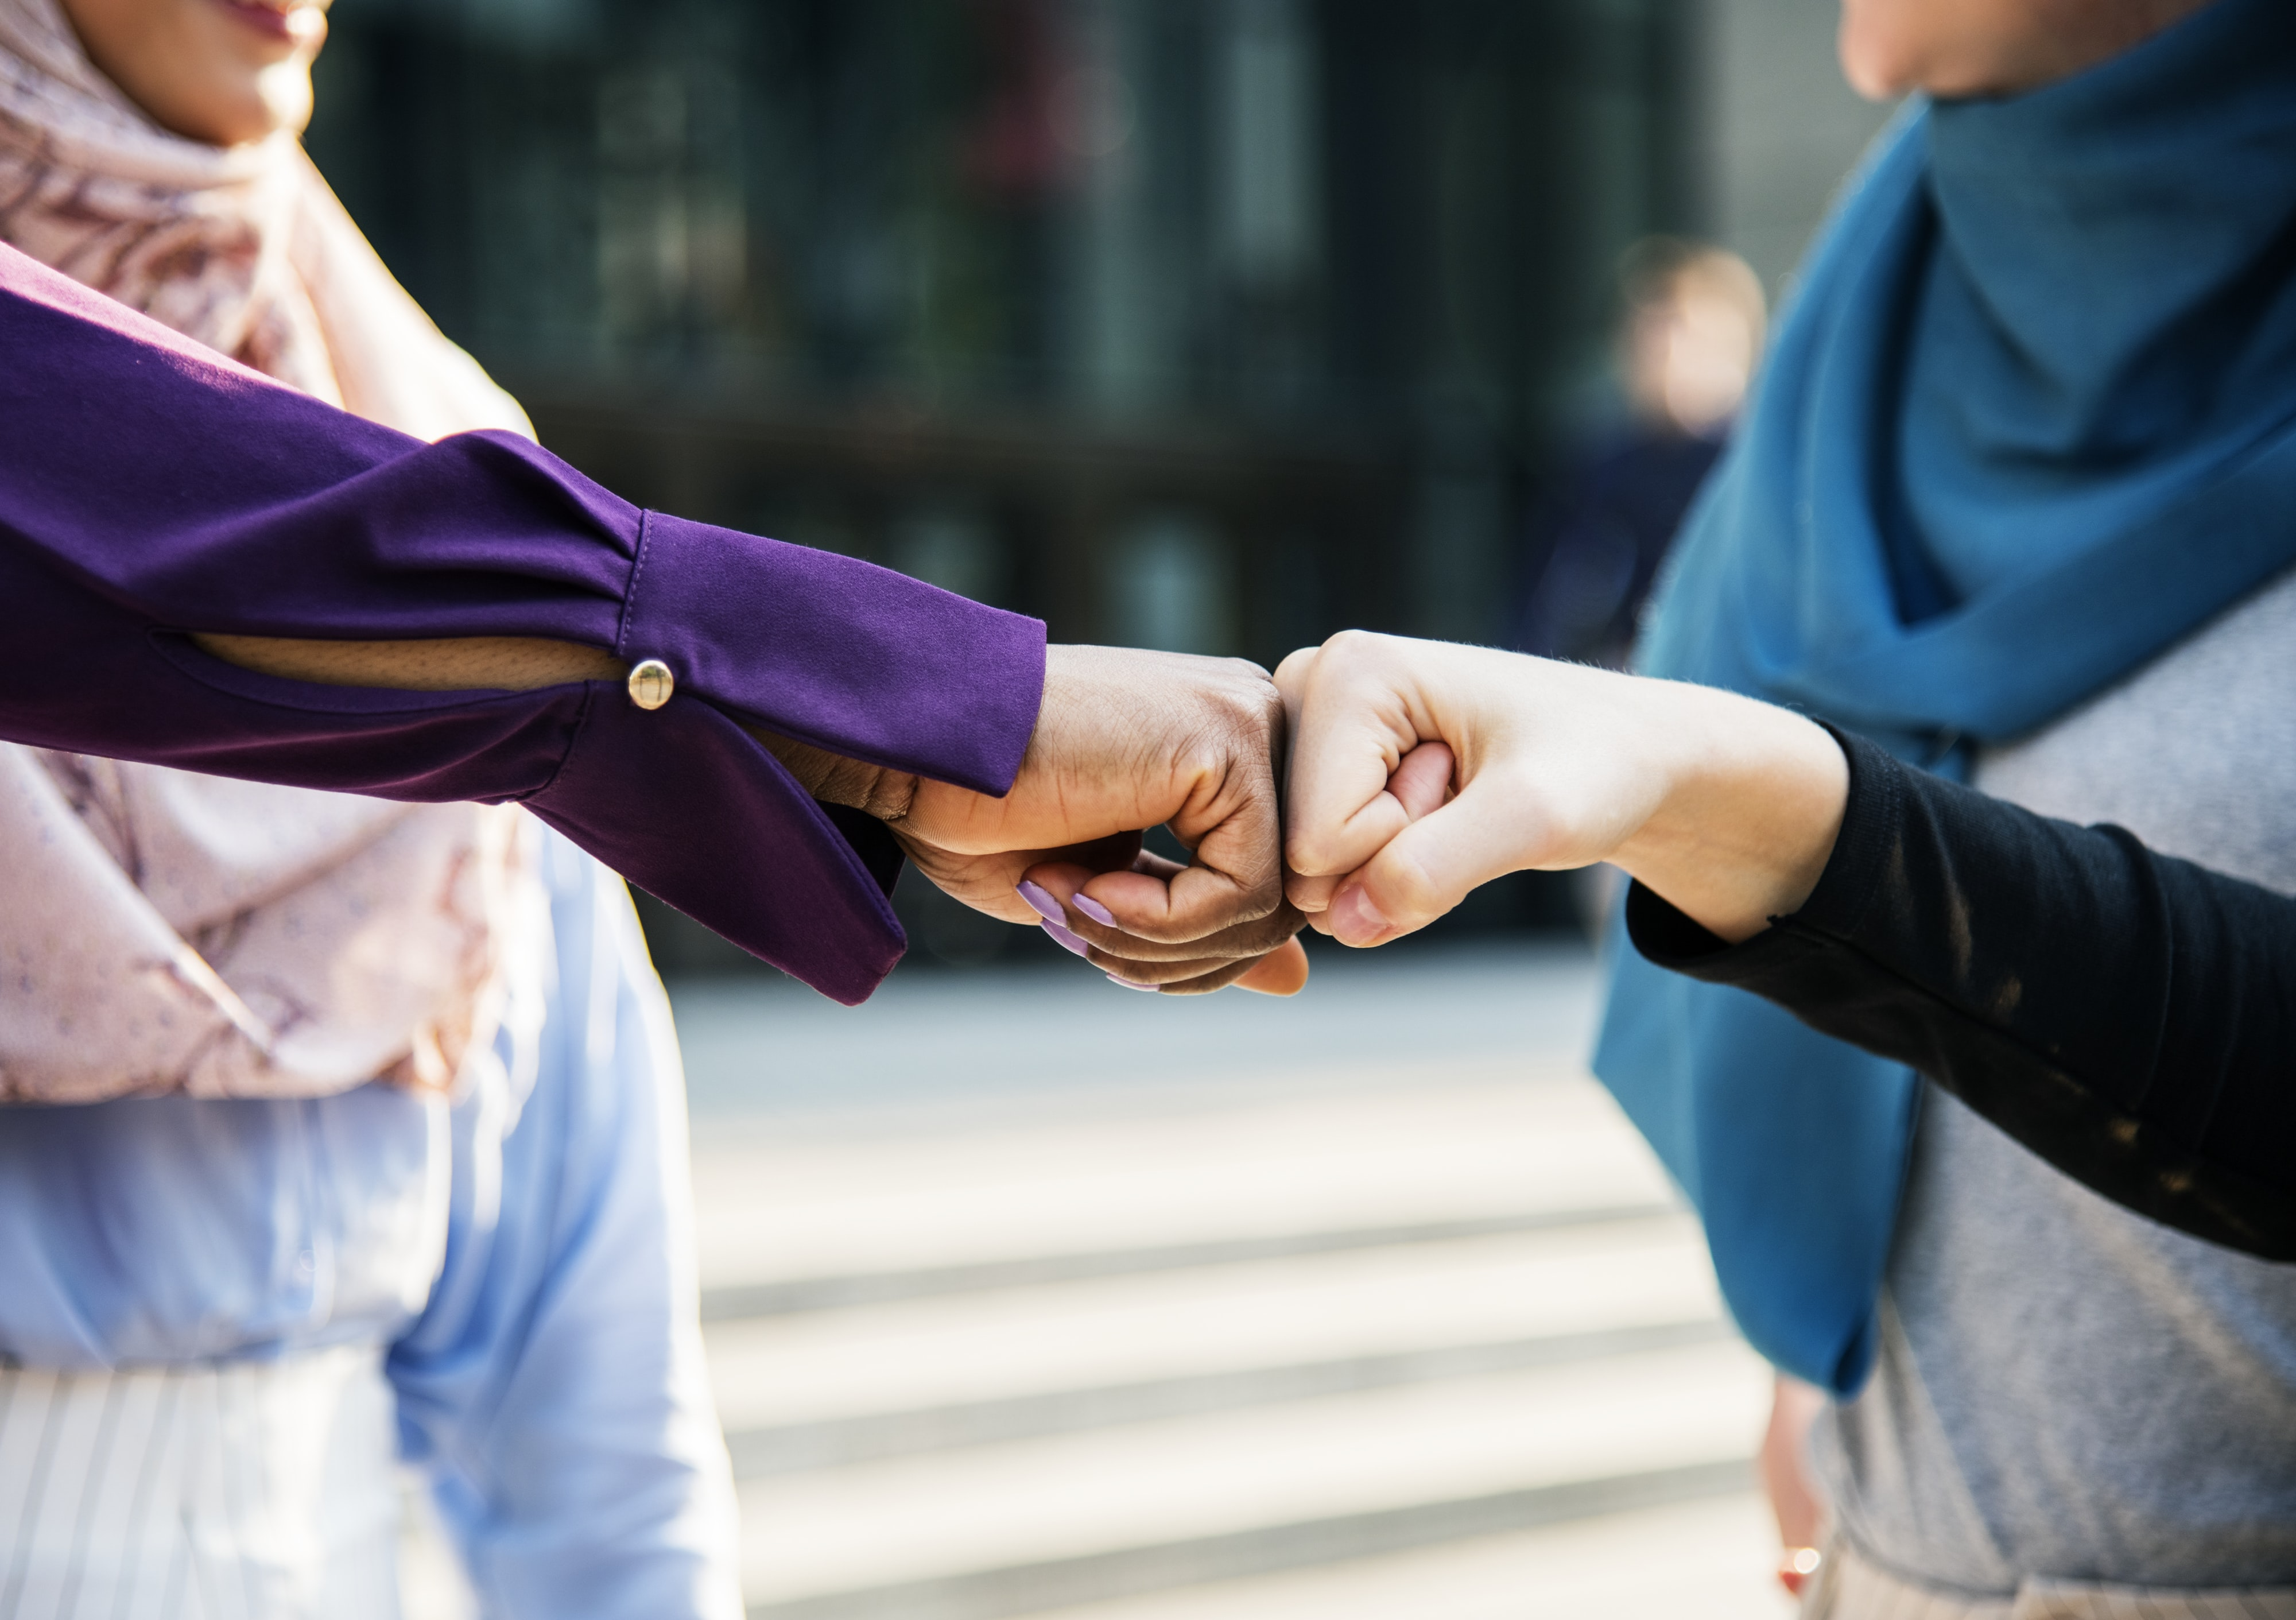 two people doing fist bump